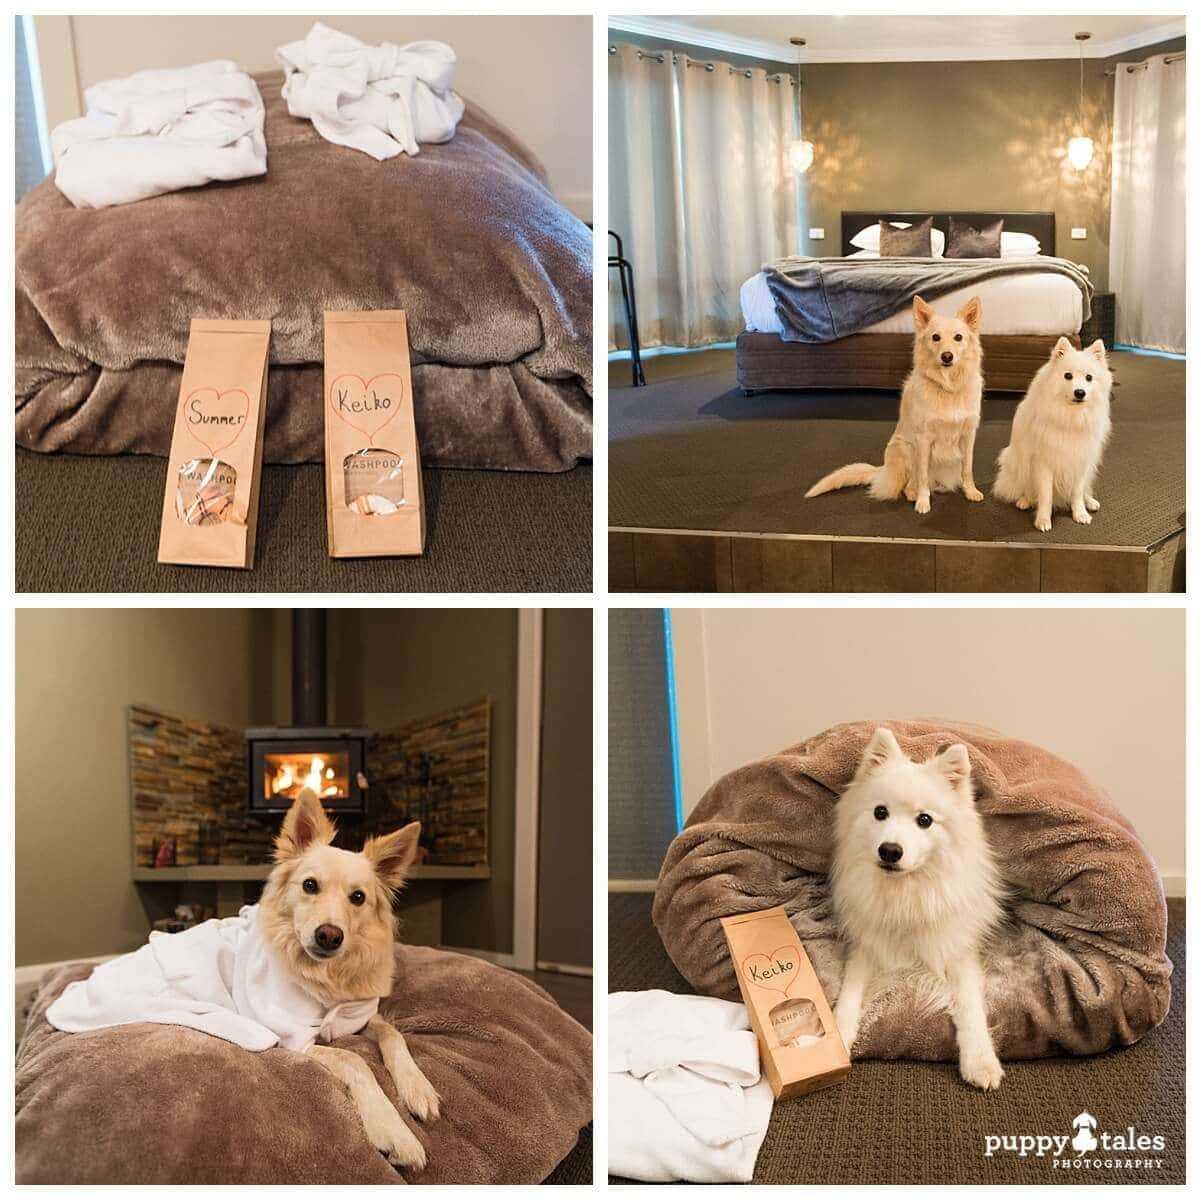 Alure Stanthorpe has one luxury spa villa that's dog friendly!